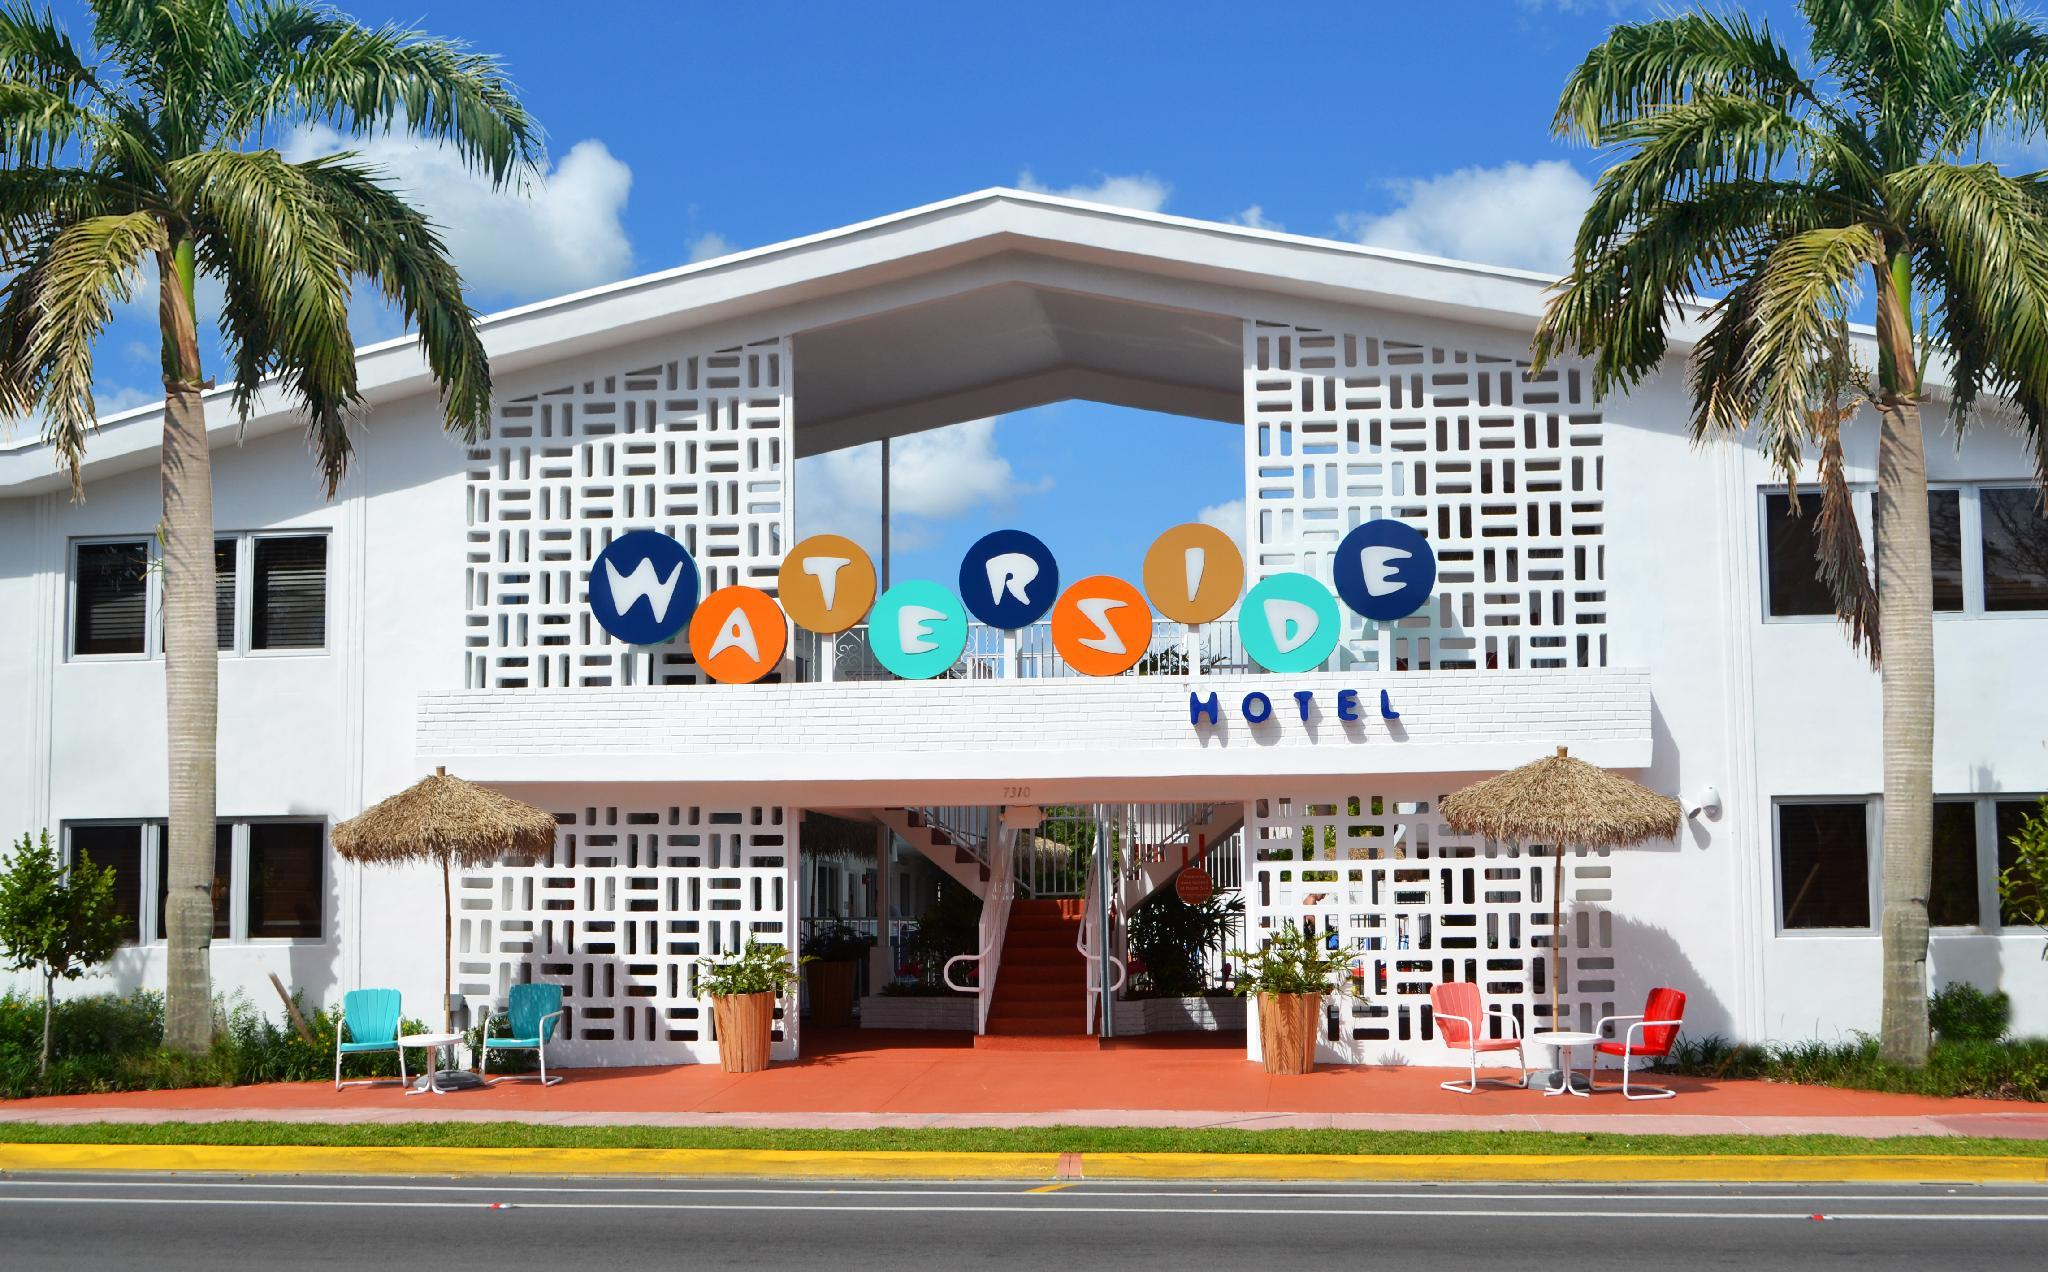 Studio ar 2 Double gultām (Studio with 2 Double Beds)